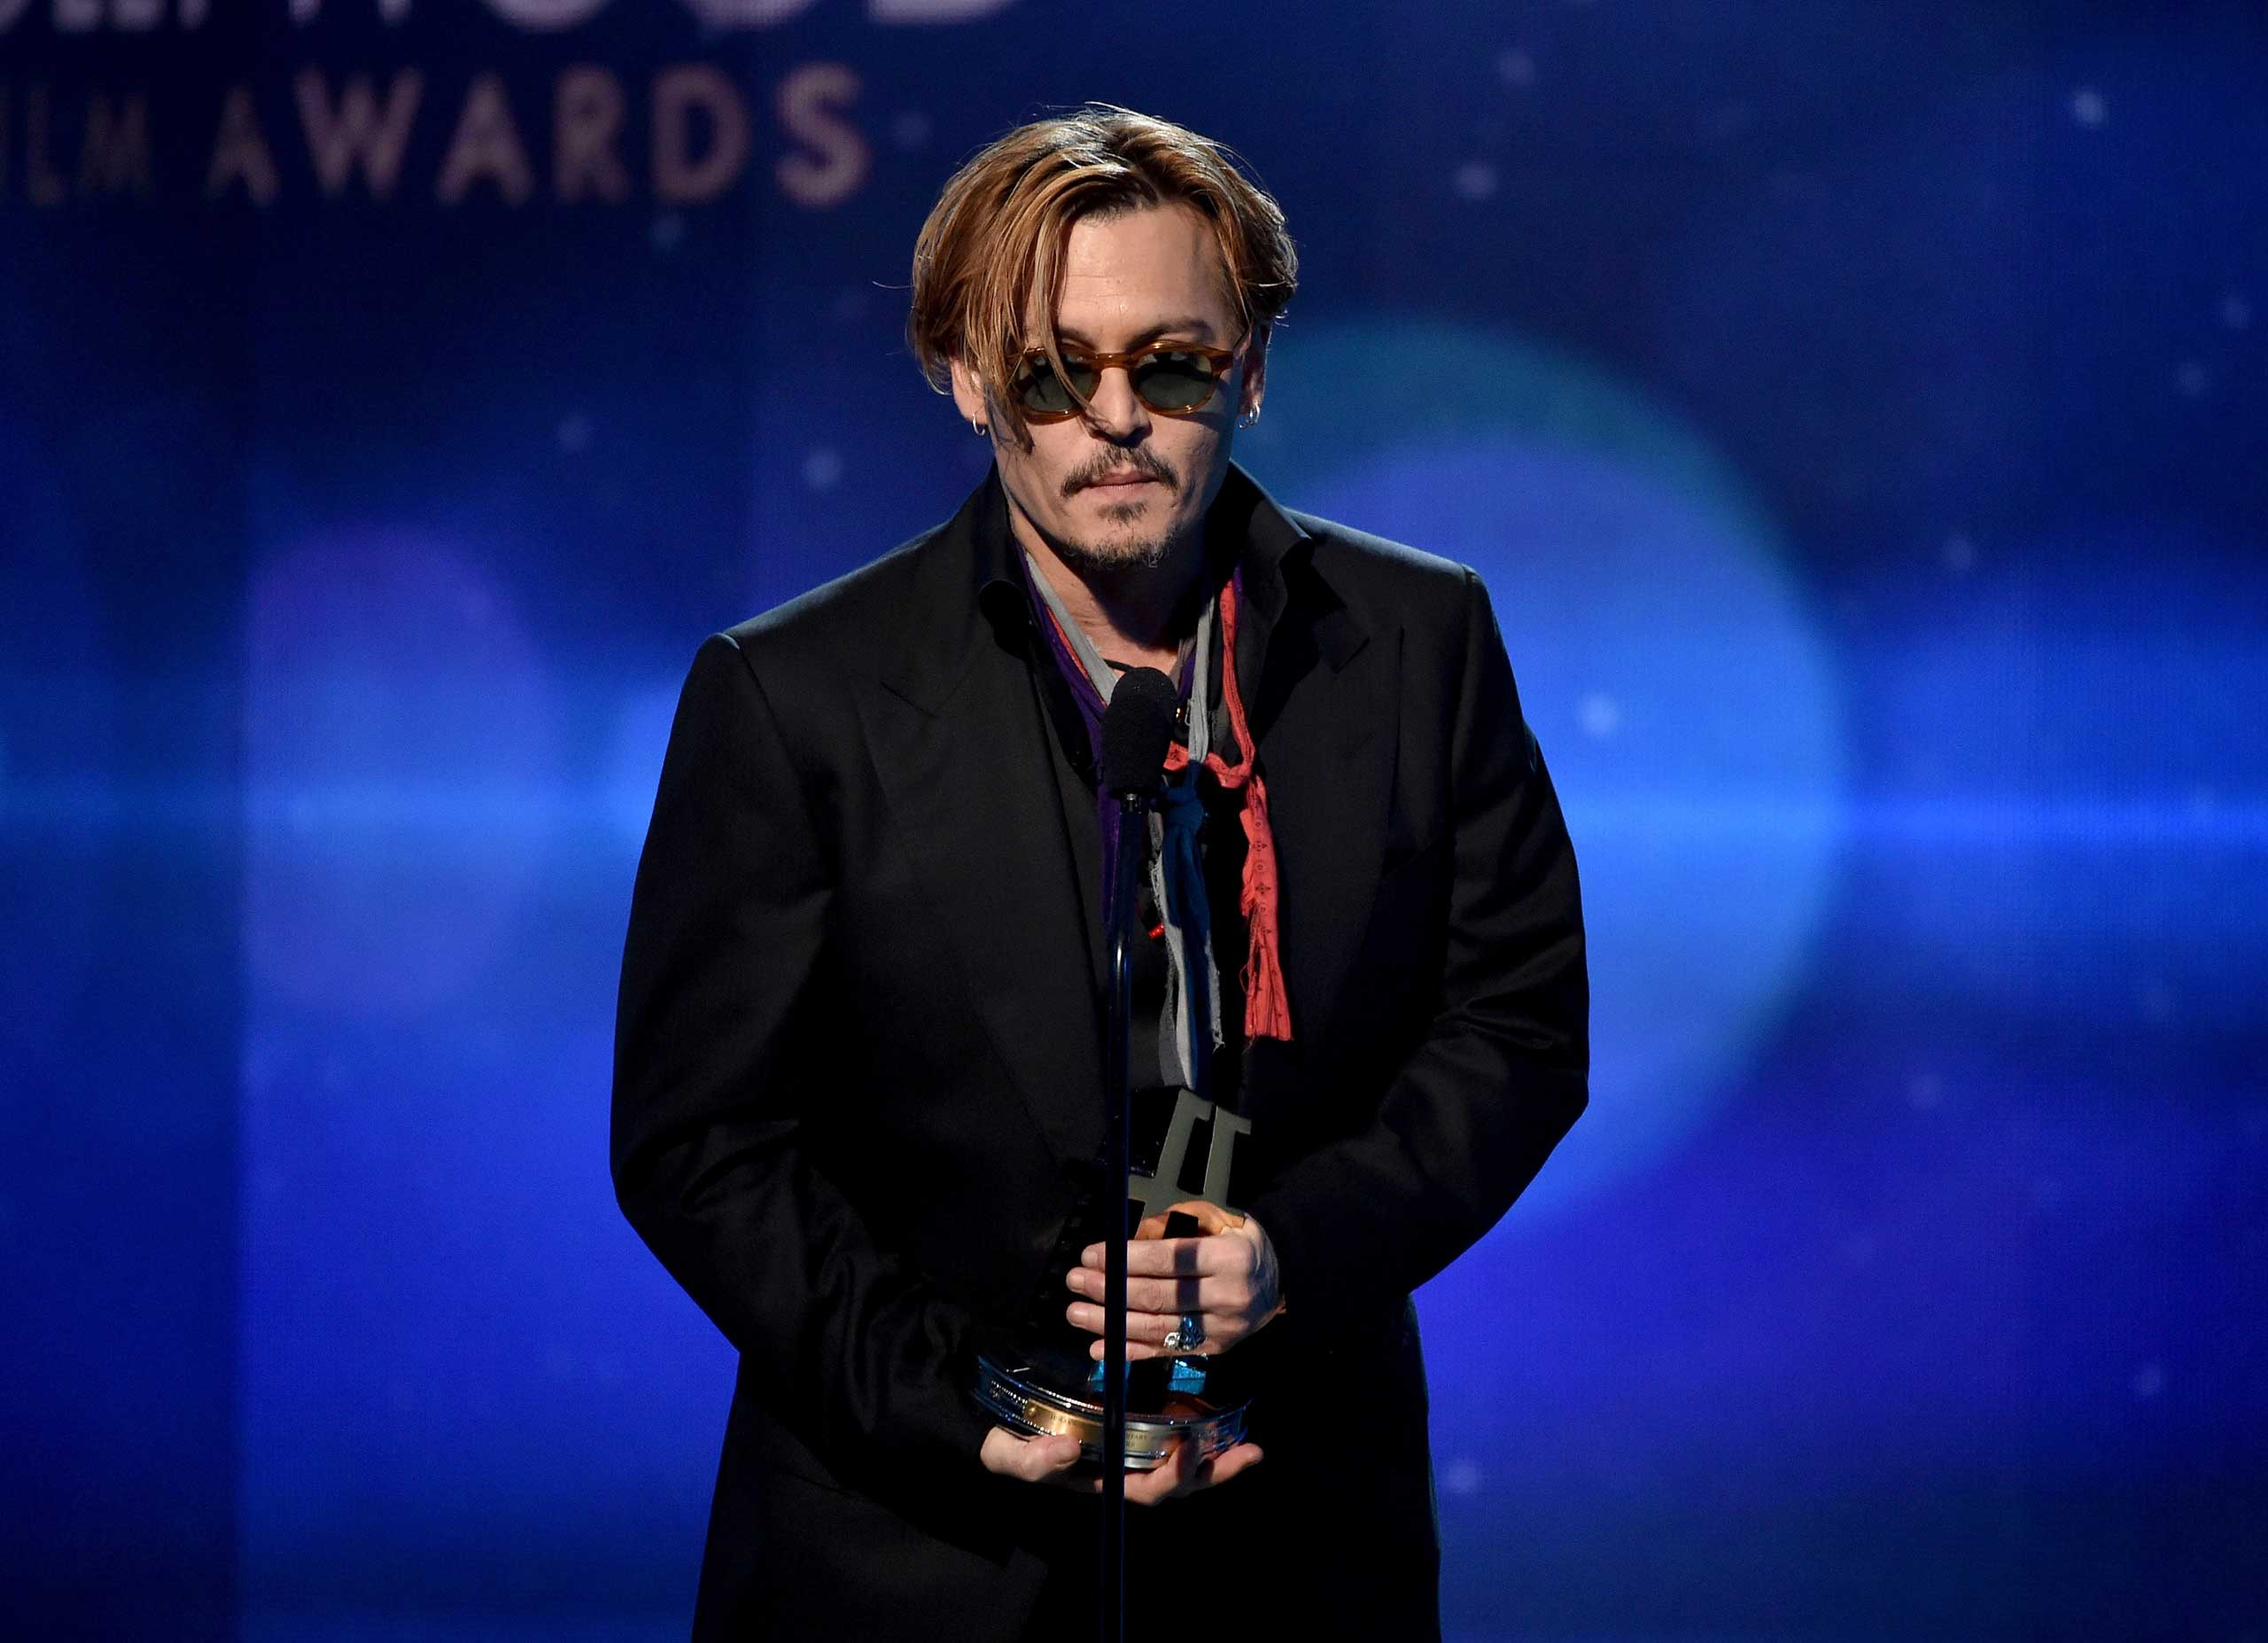 Johnny Depp speaks onstage during the 18th Annual Hollywood Film Awards at The Palladium on Nov. 14, 2014 in Hollywood.